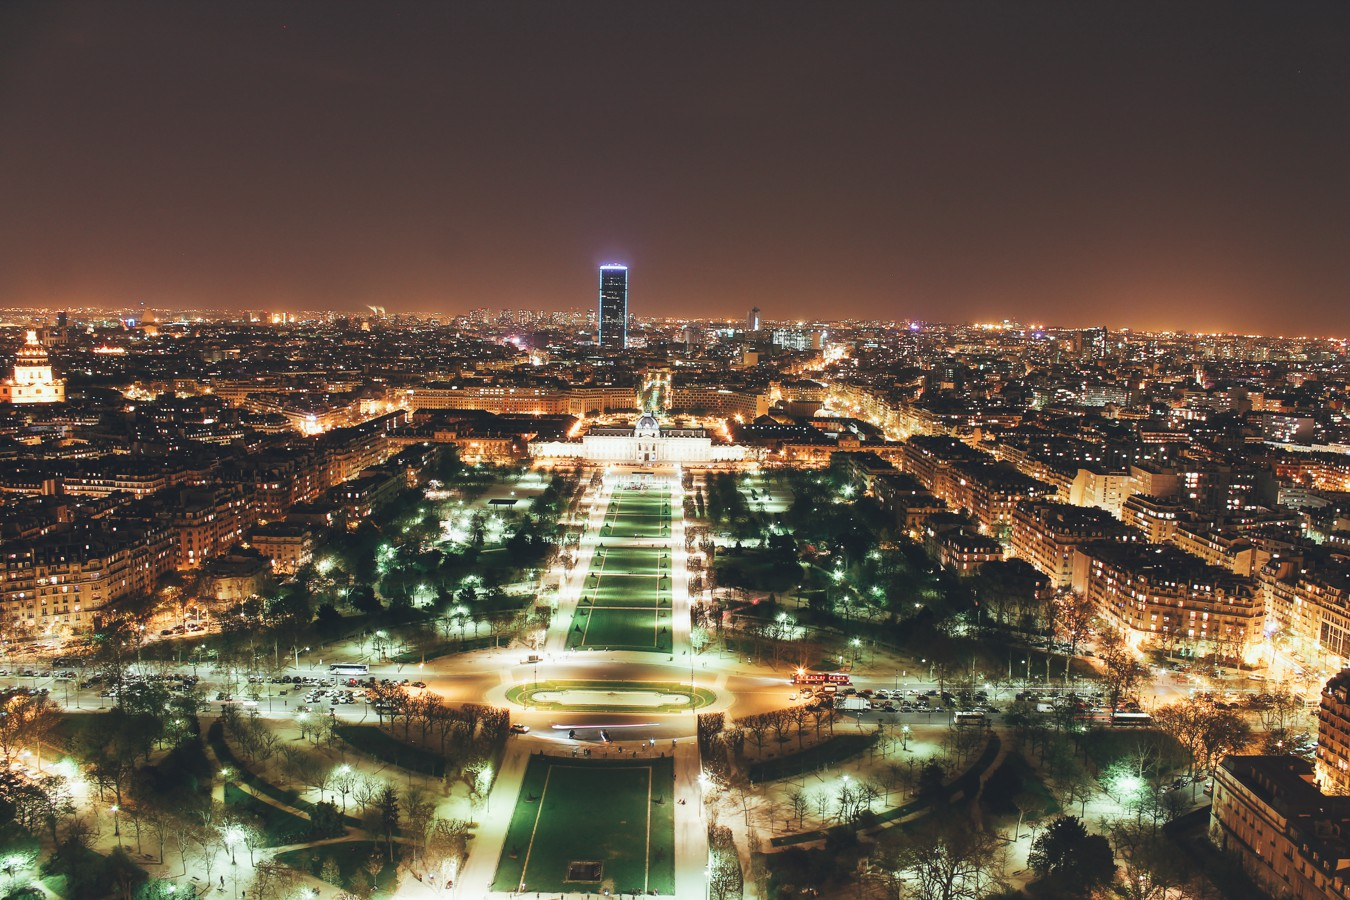 Things to do in Paris - Take in the view from the top of the Eiffel Tower (7)